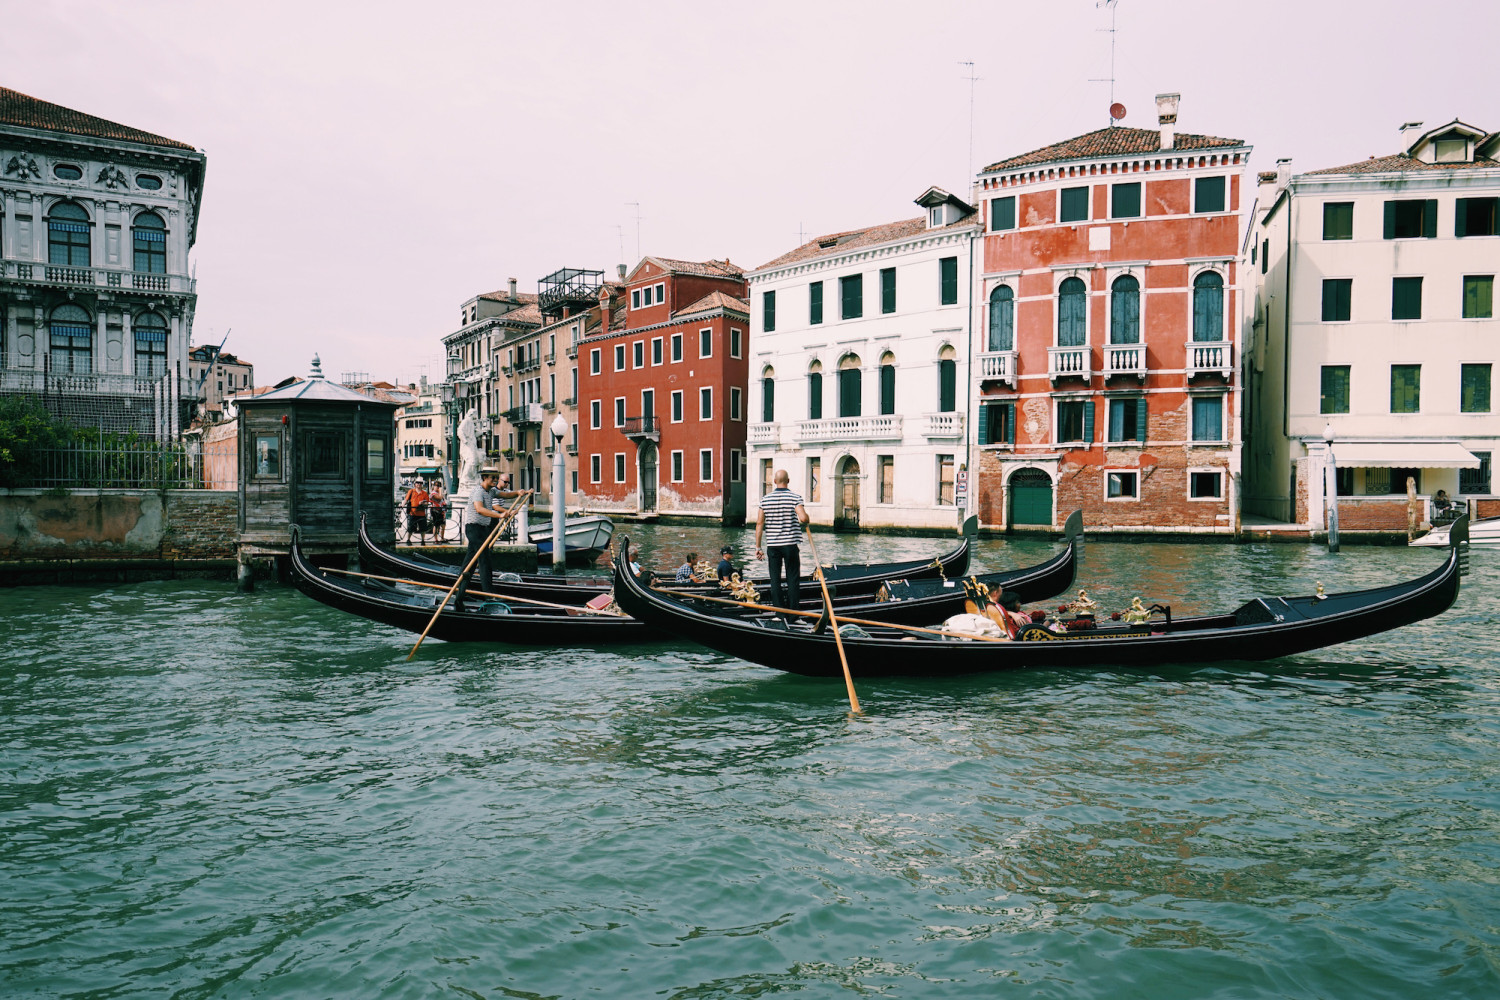 venice-grand-canal-2-dante-vincent-photography